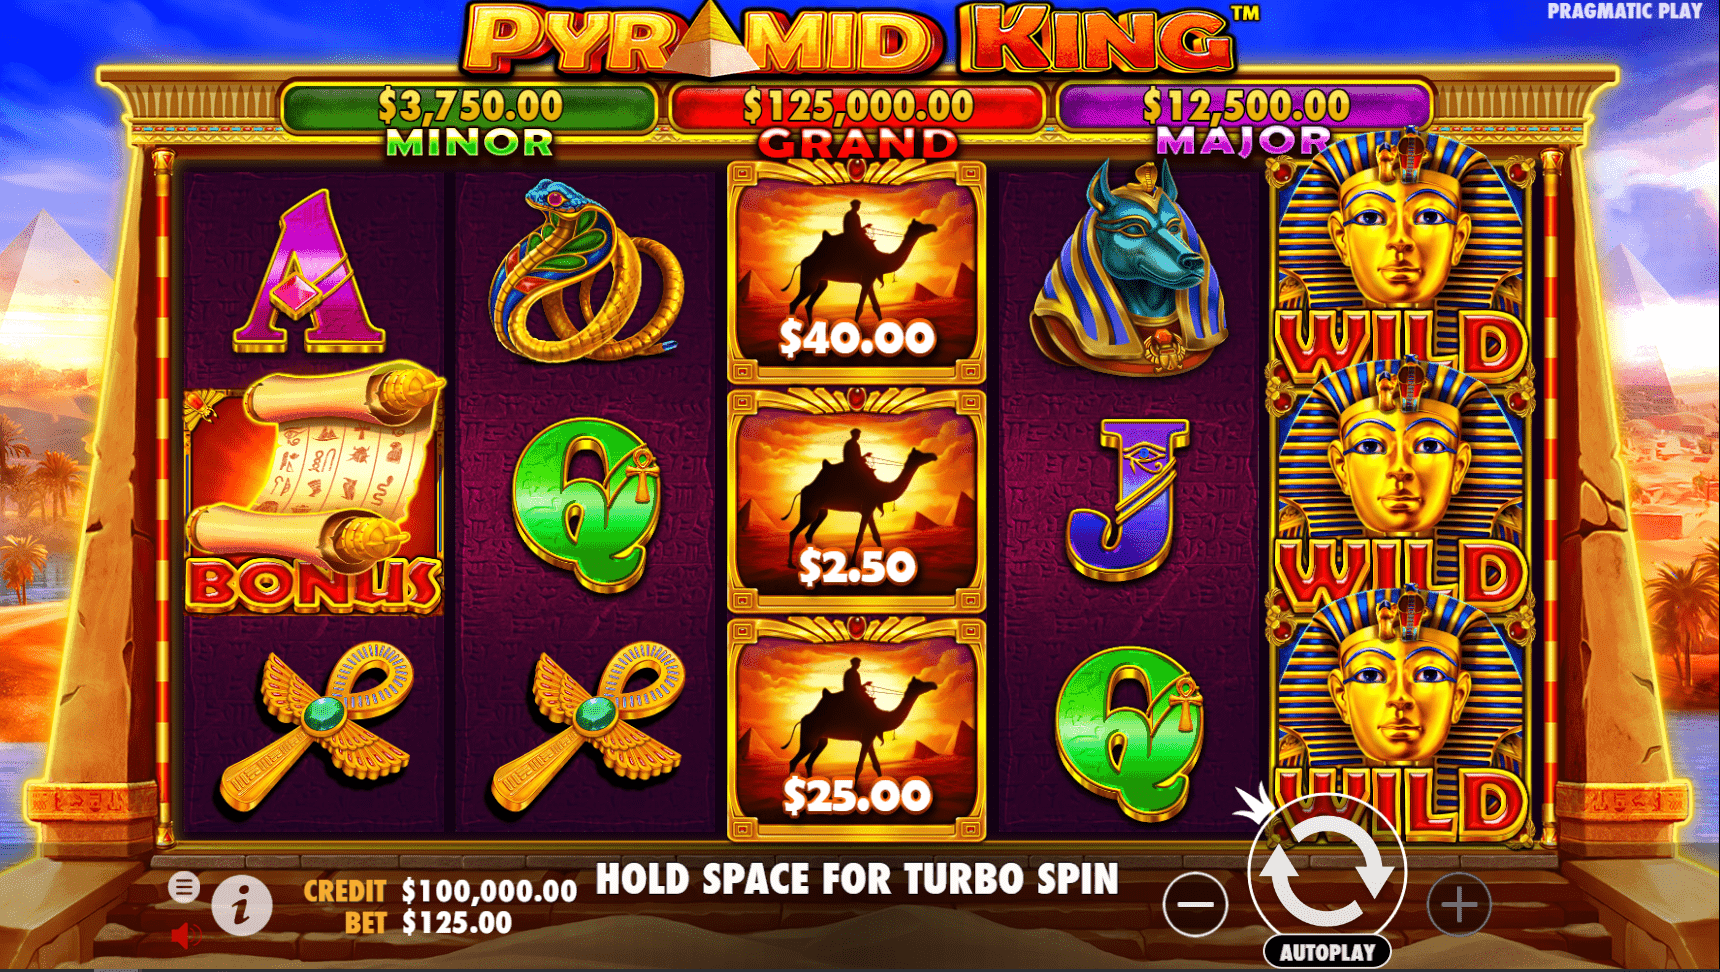 Pyramid King Video Slot game